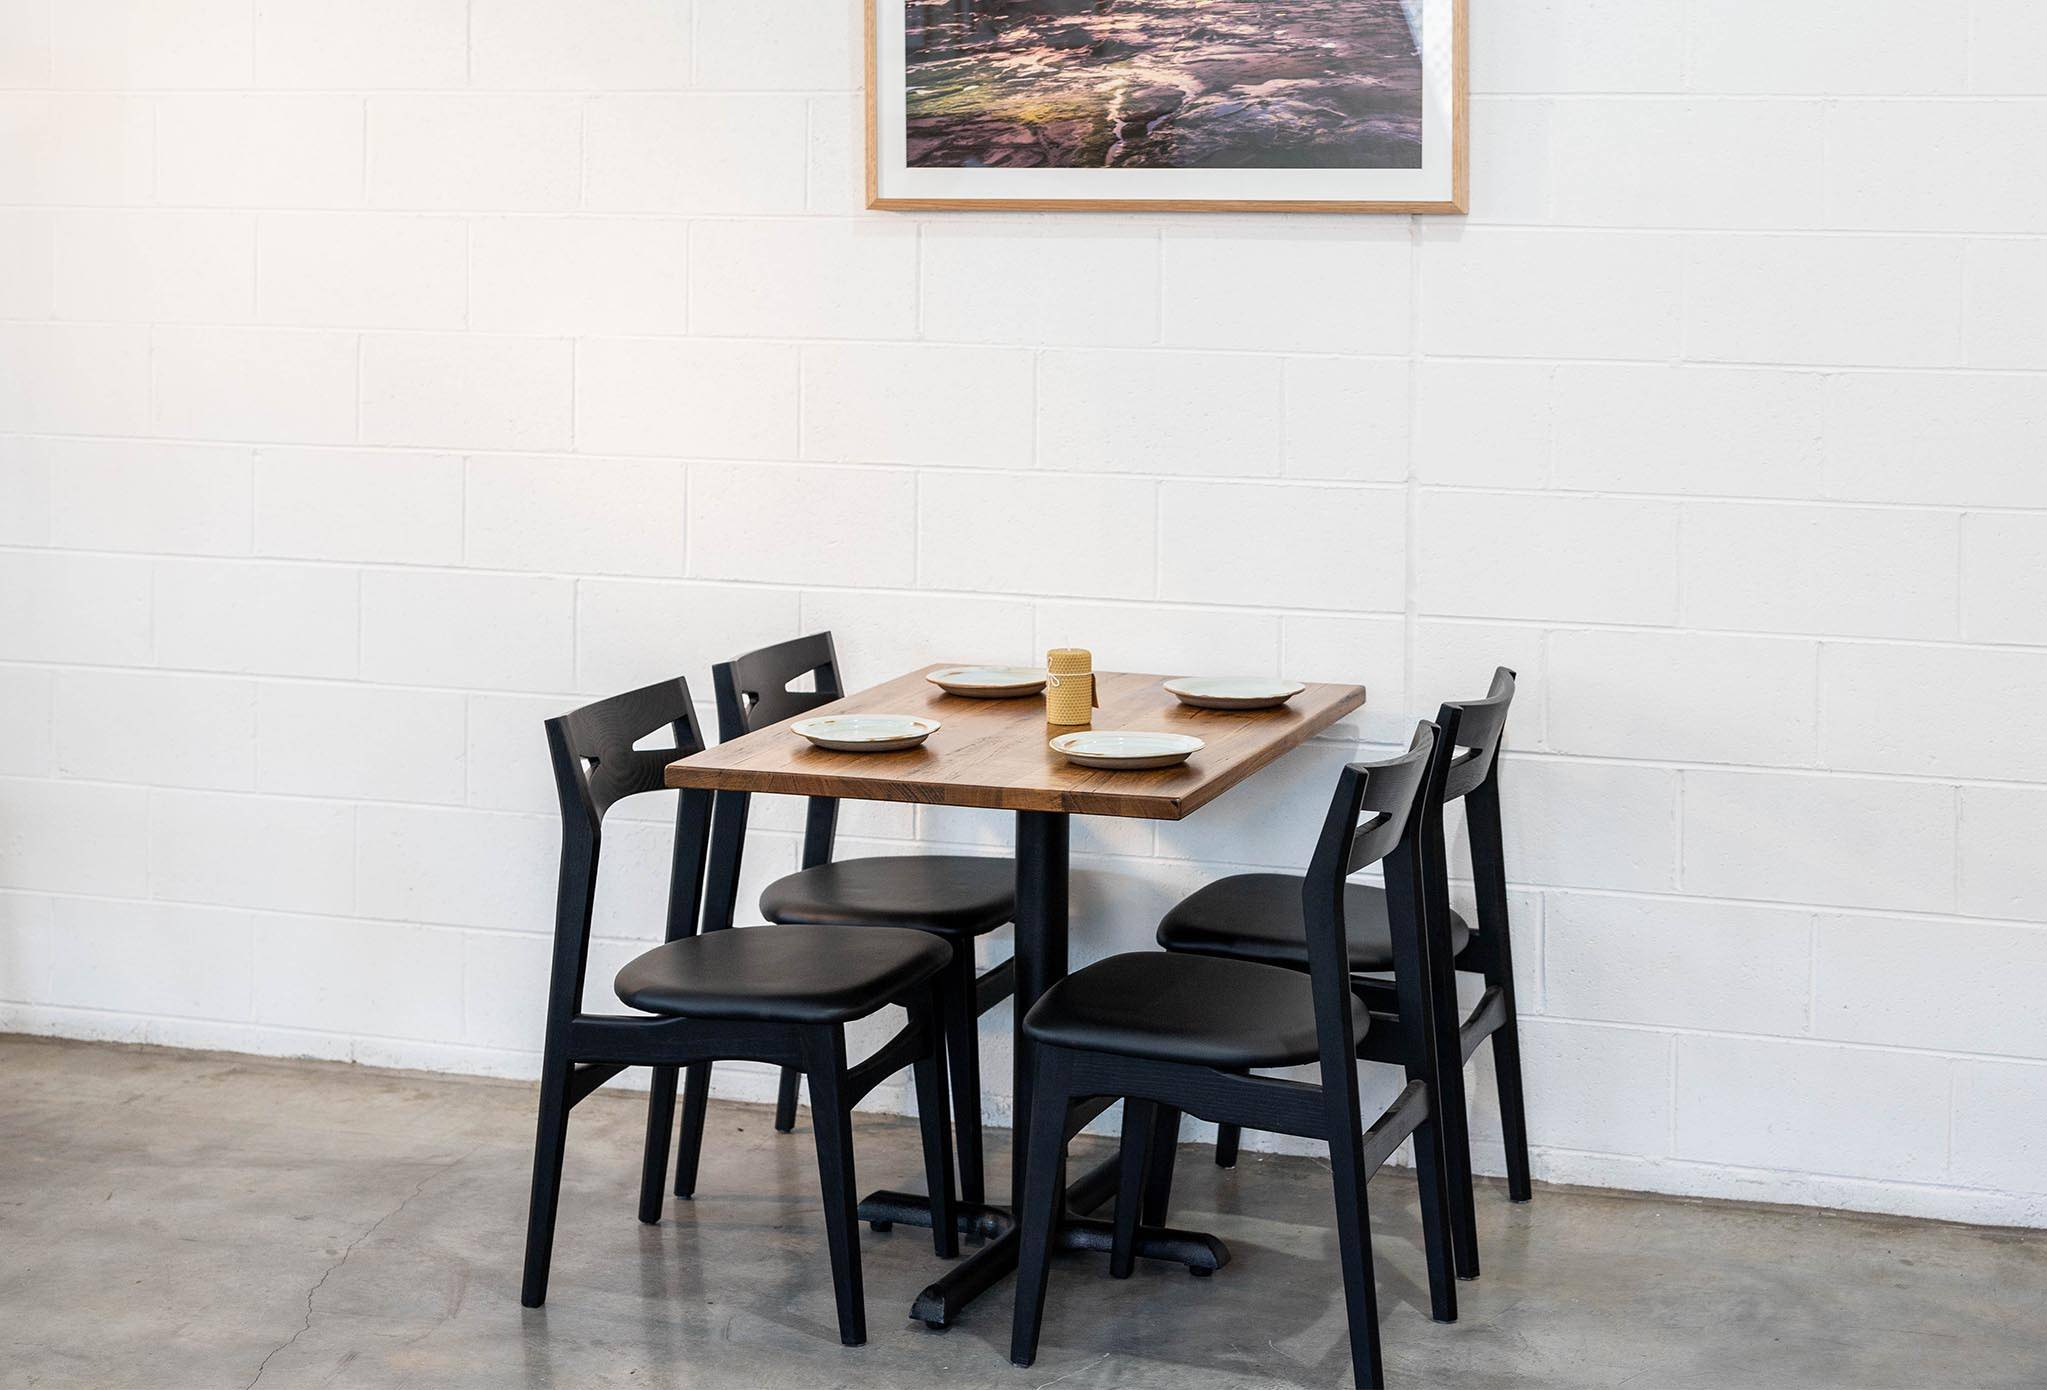 Cafe Straightboard for 4 Seats